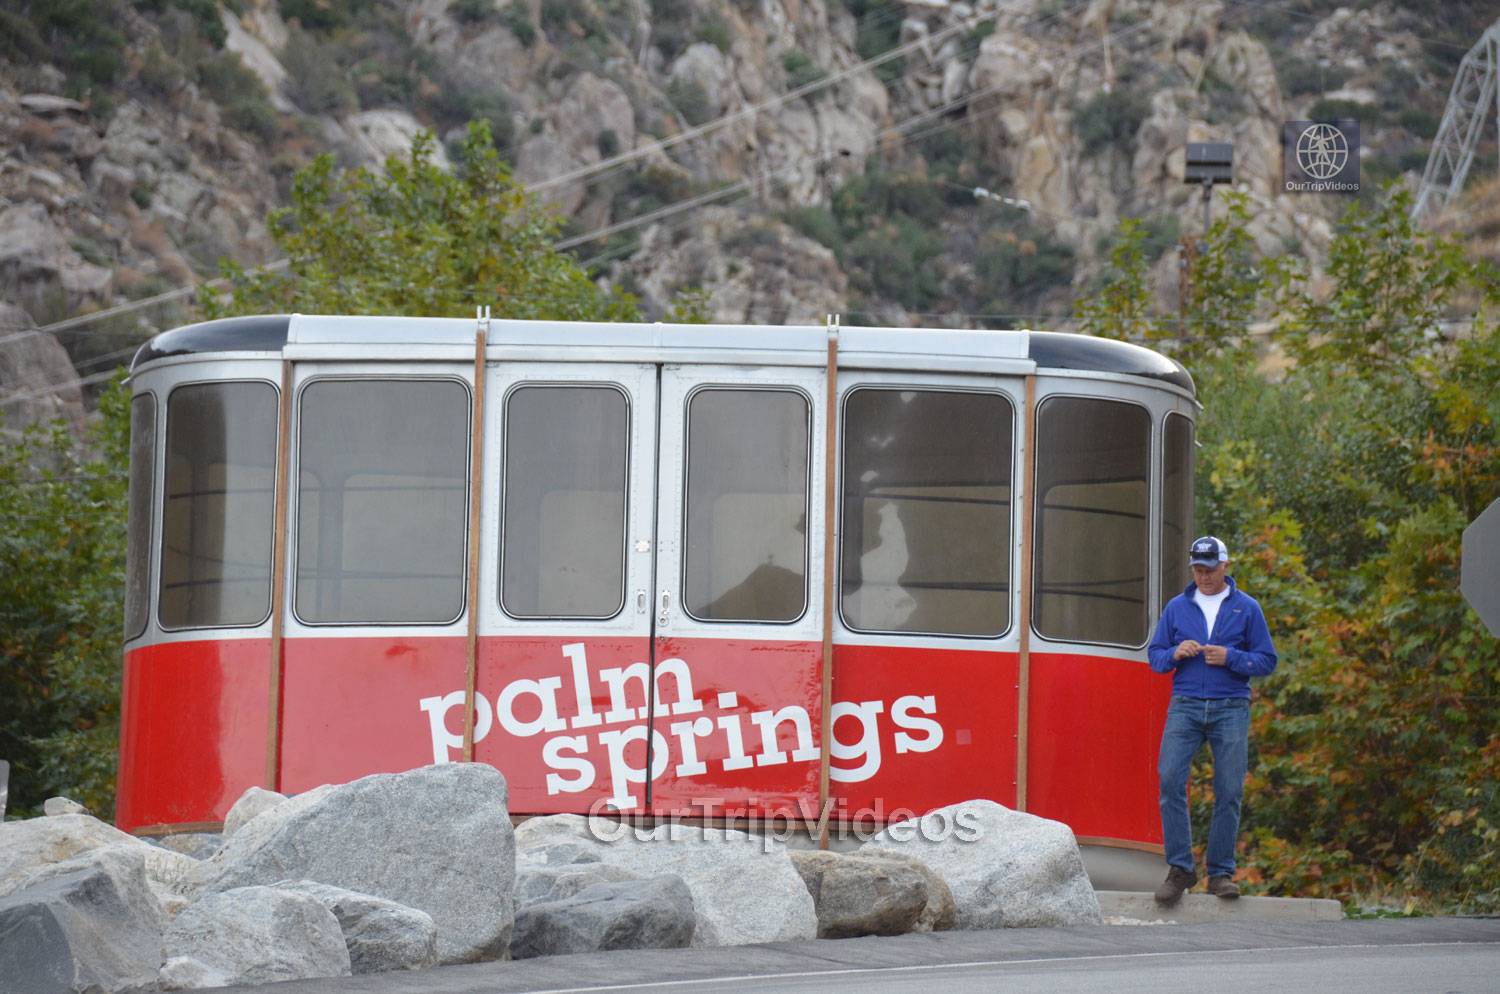 Aerial Tramway, Palm Springs, CA, USA - Picture 3 of 25